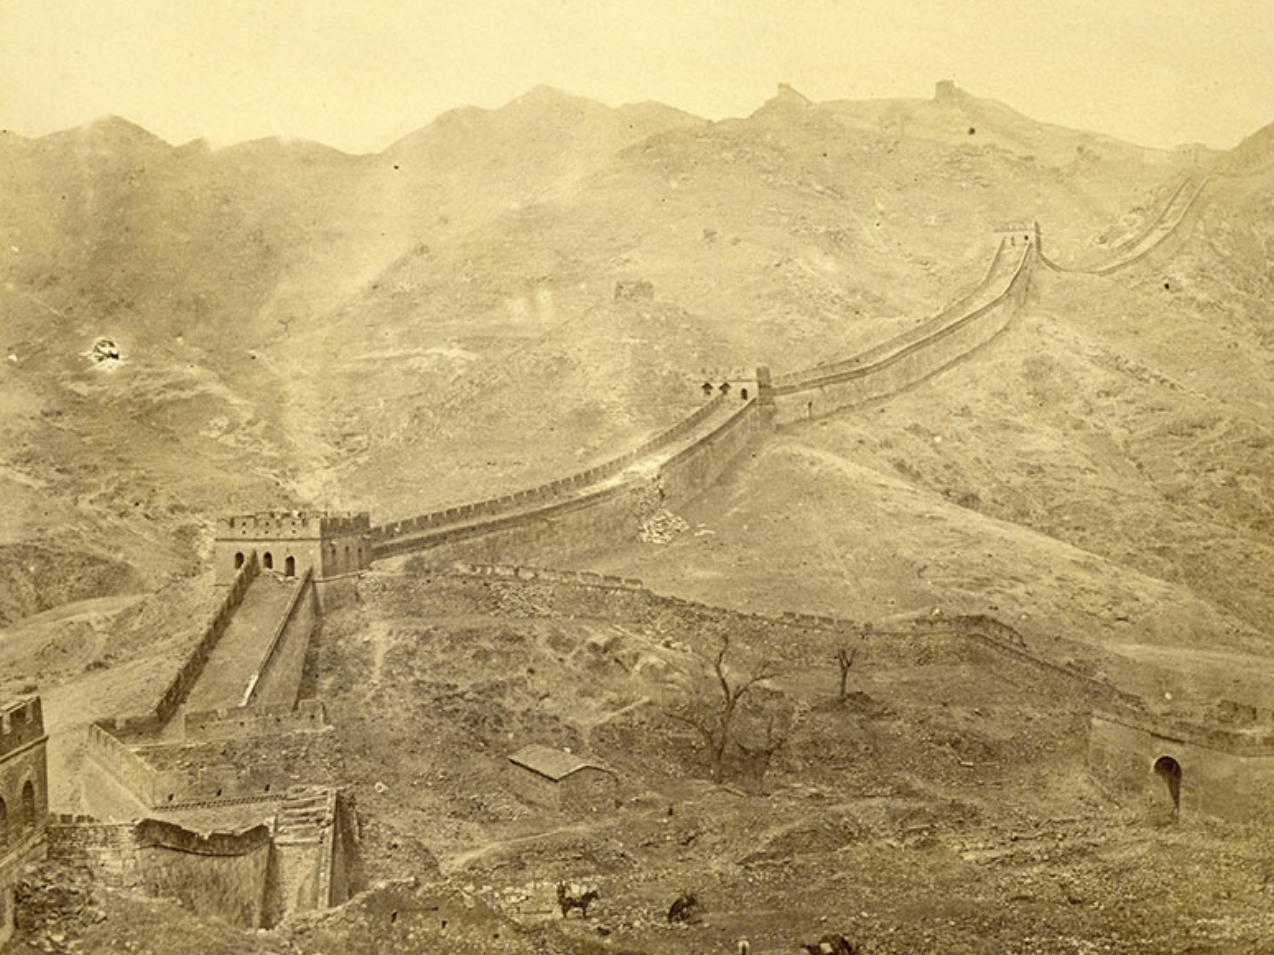 Historic images reveal 180 years of change in China